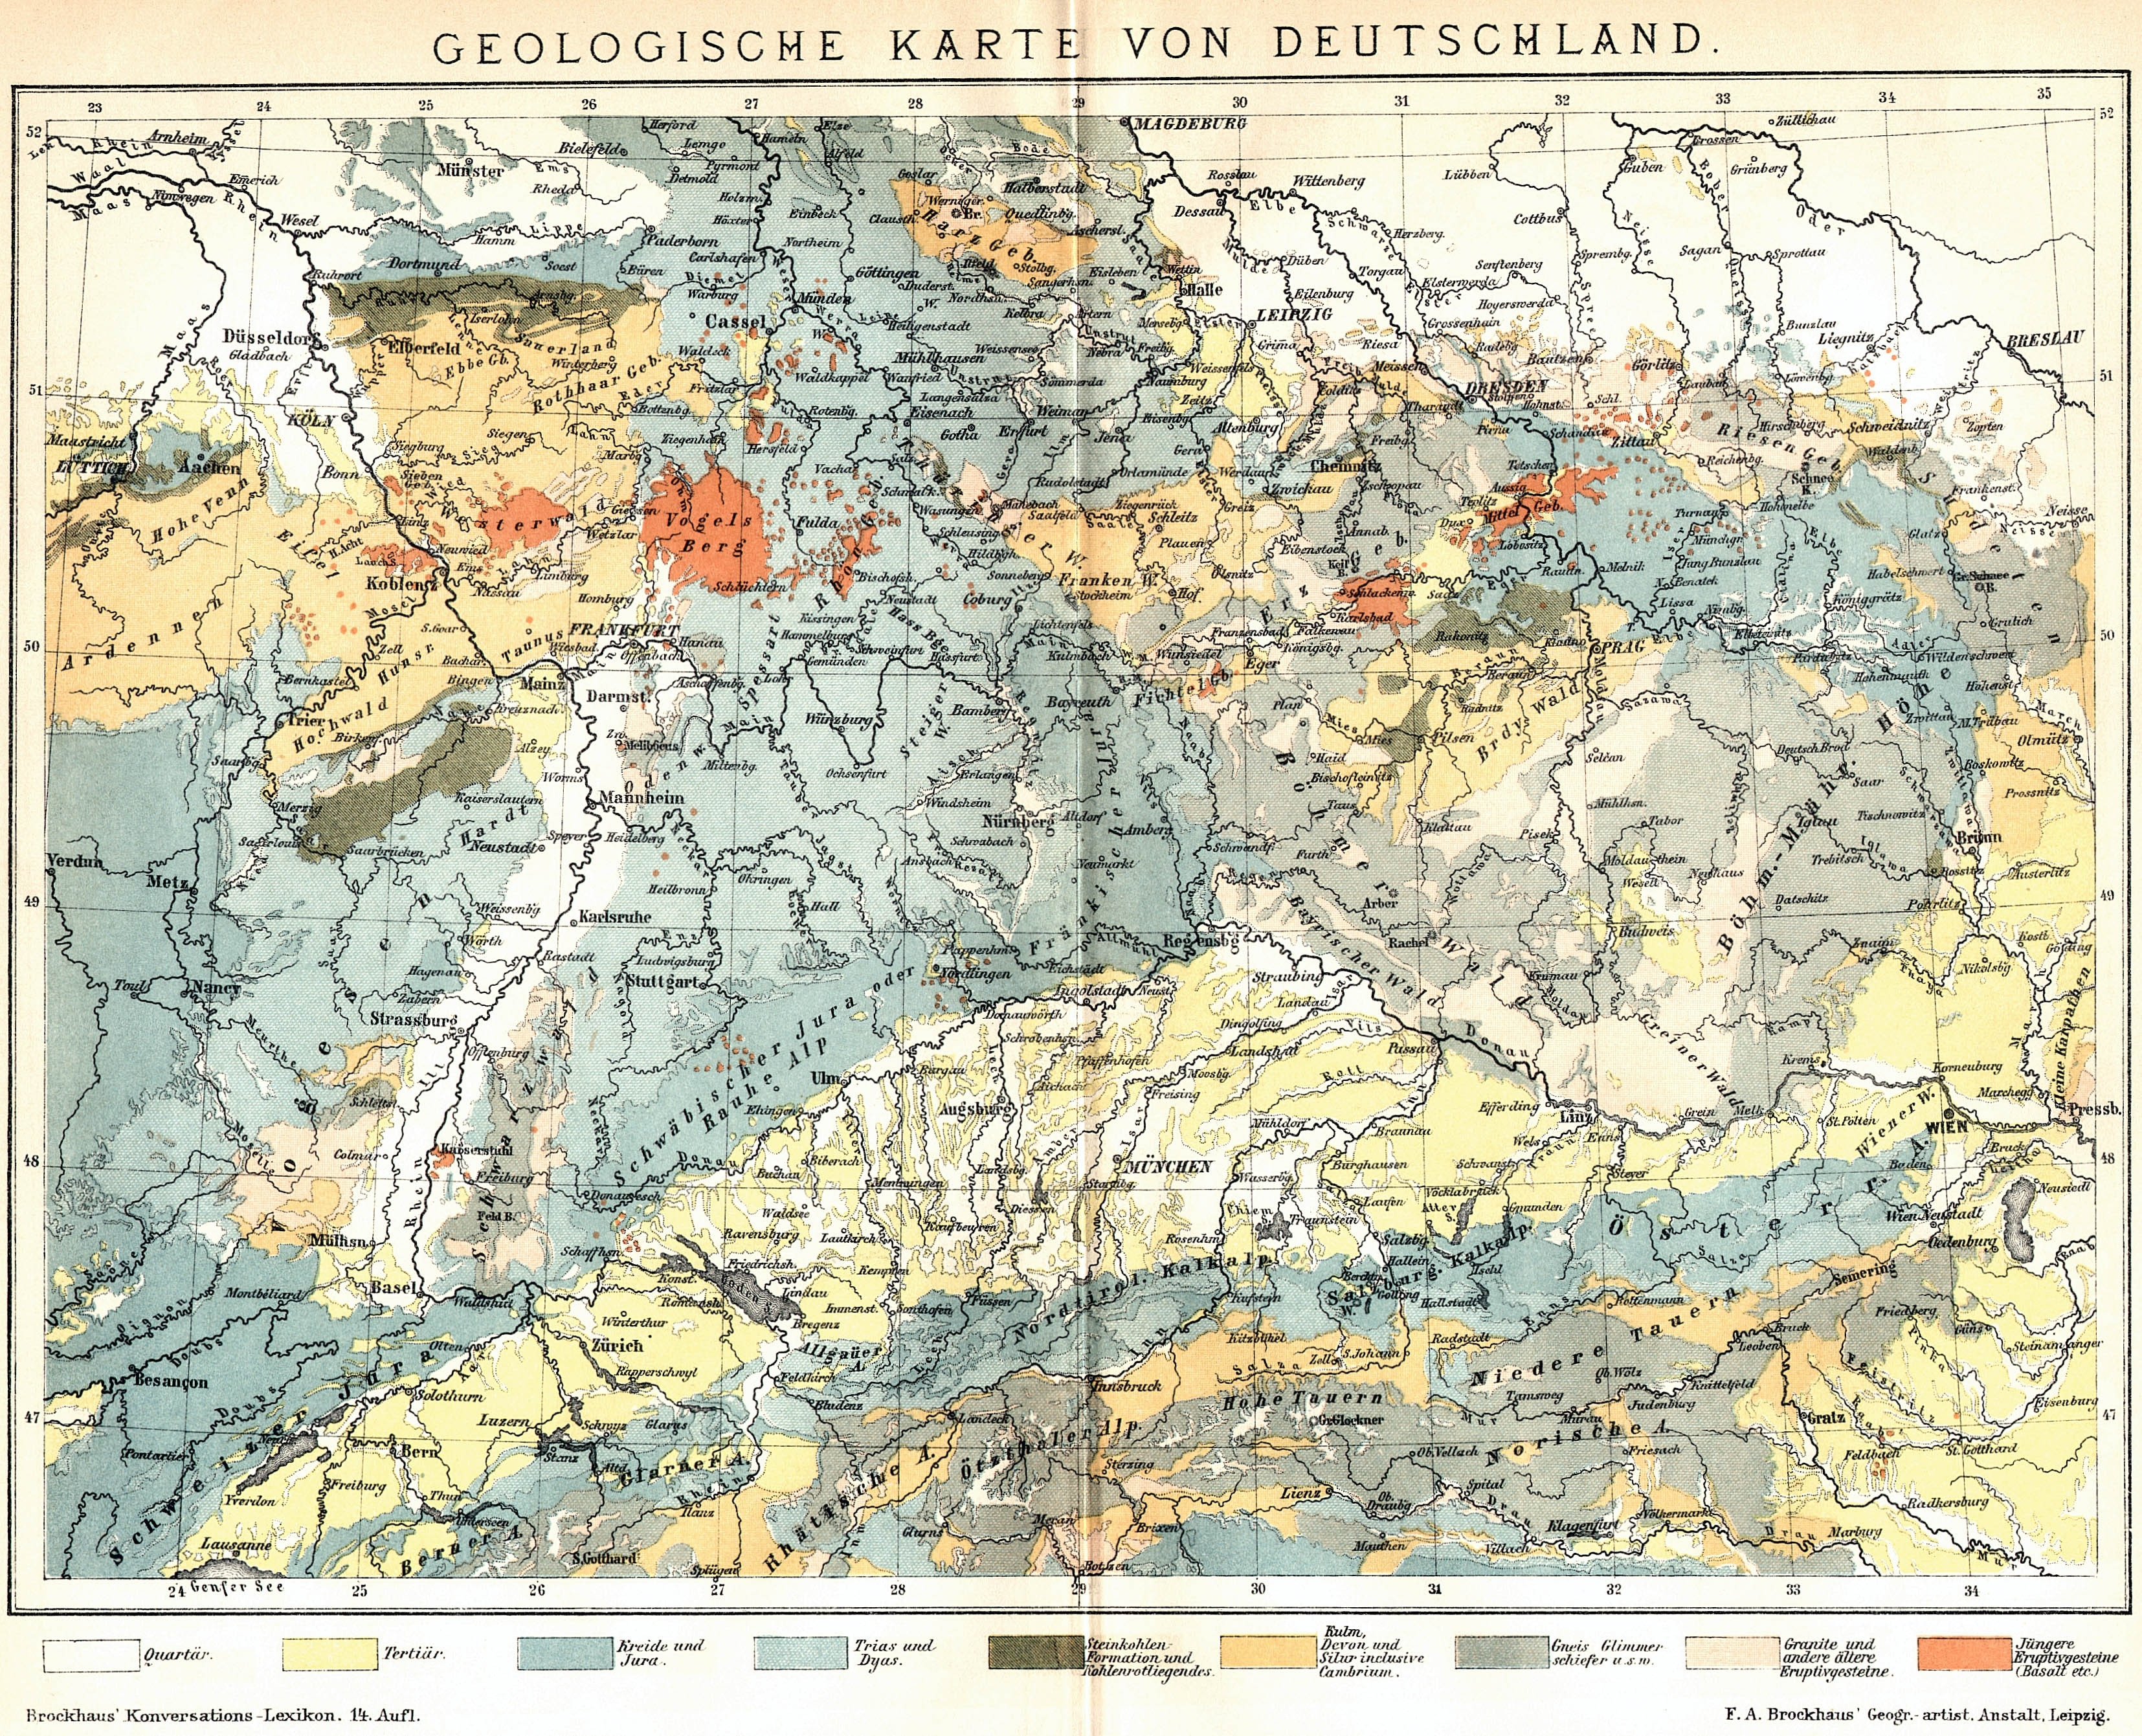 Geological Map Of Germany | Gifex in Geological Map Of Germany